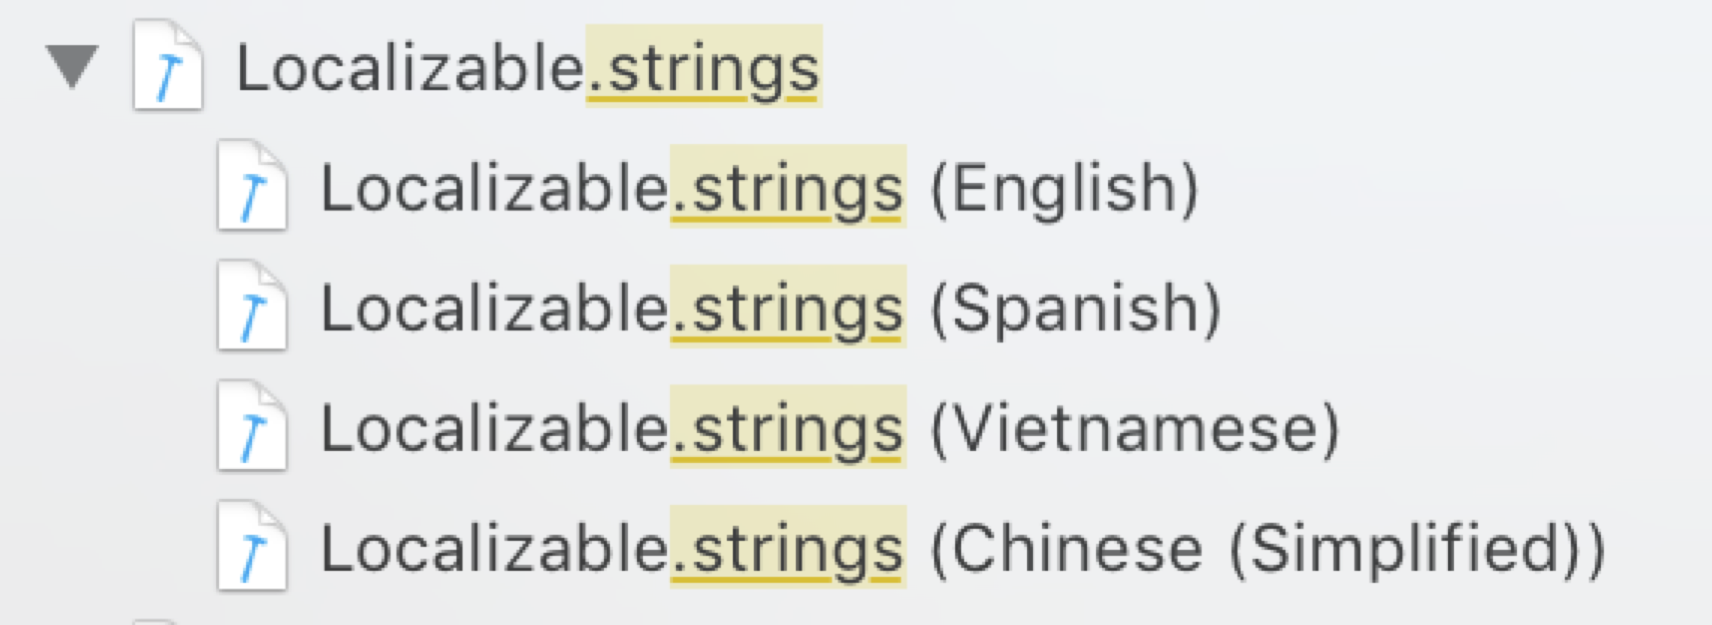 Where the &$!#% is Localizable strings?!?